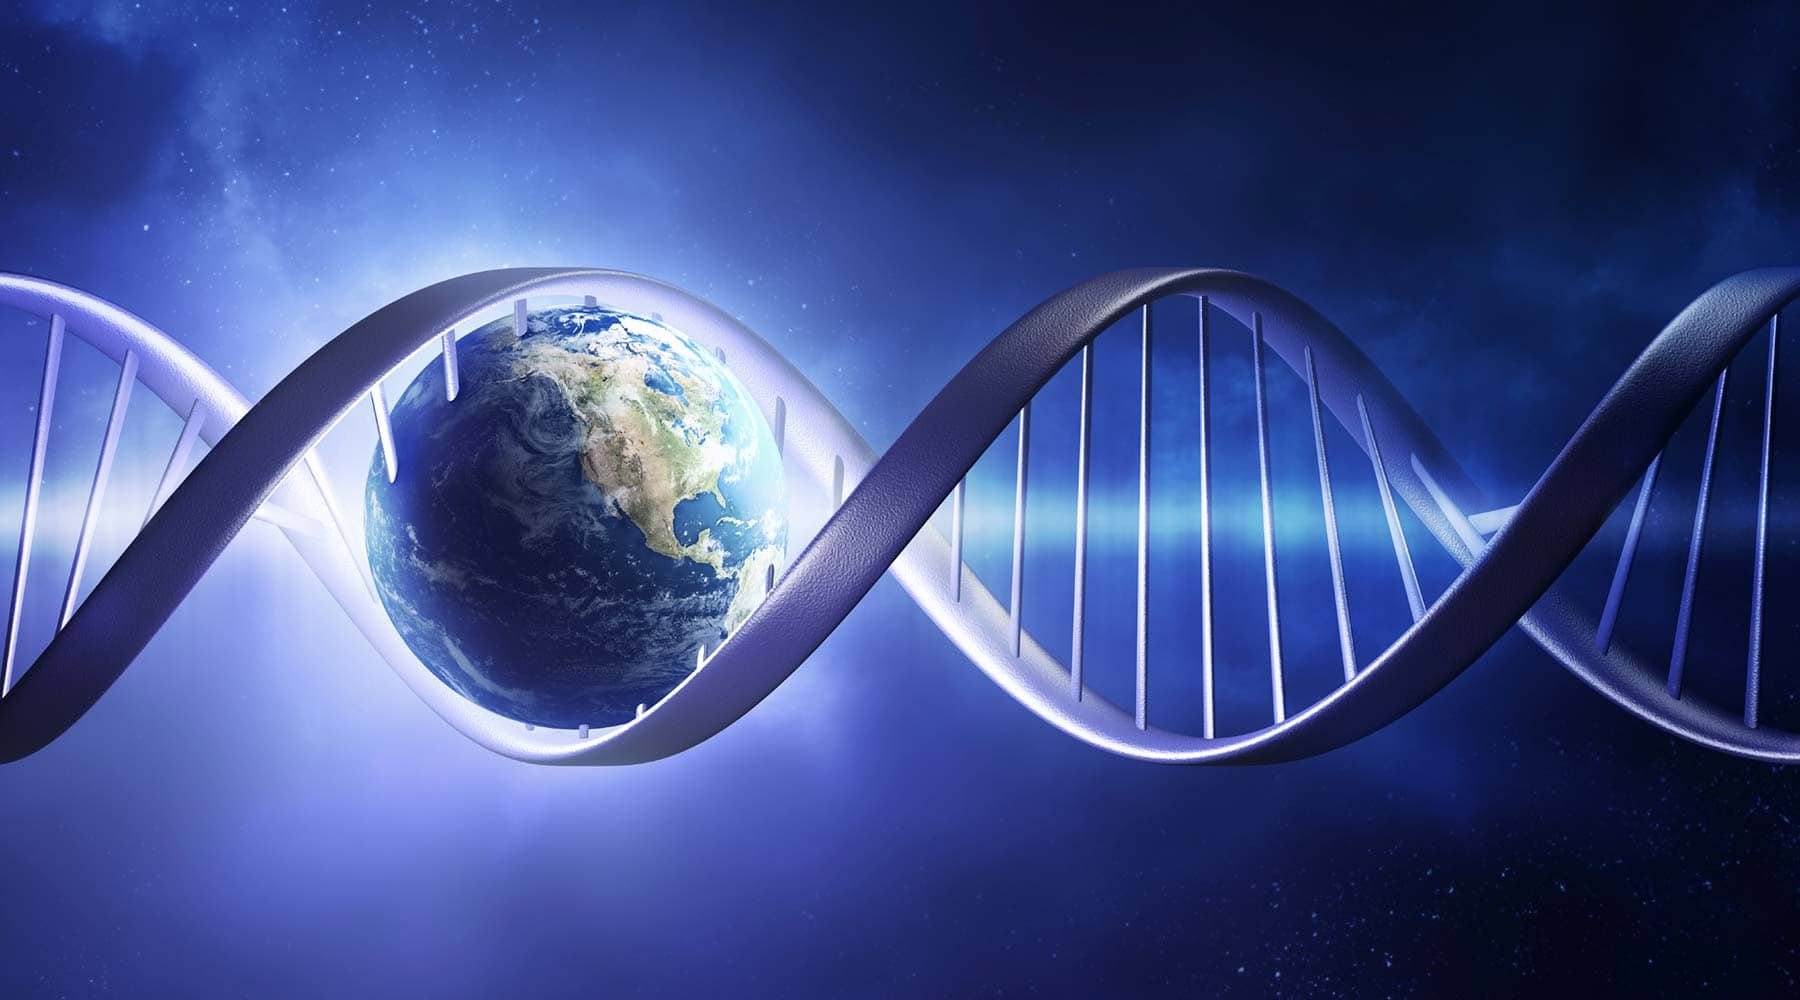 Homeschool science curriculum dna and earth banner